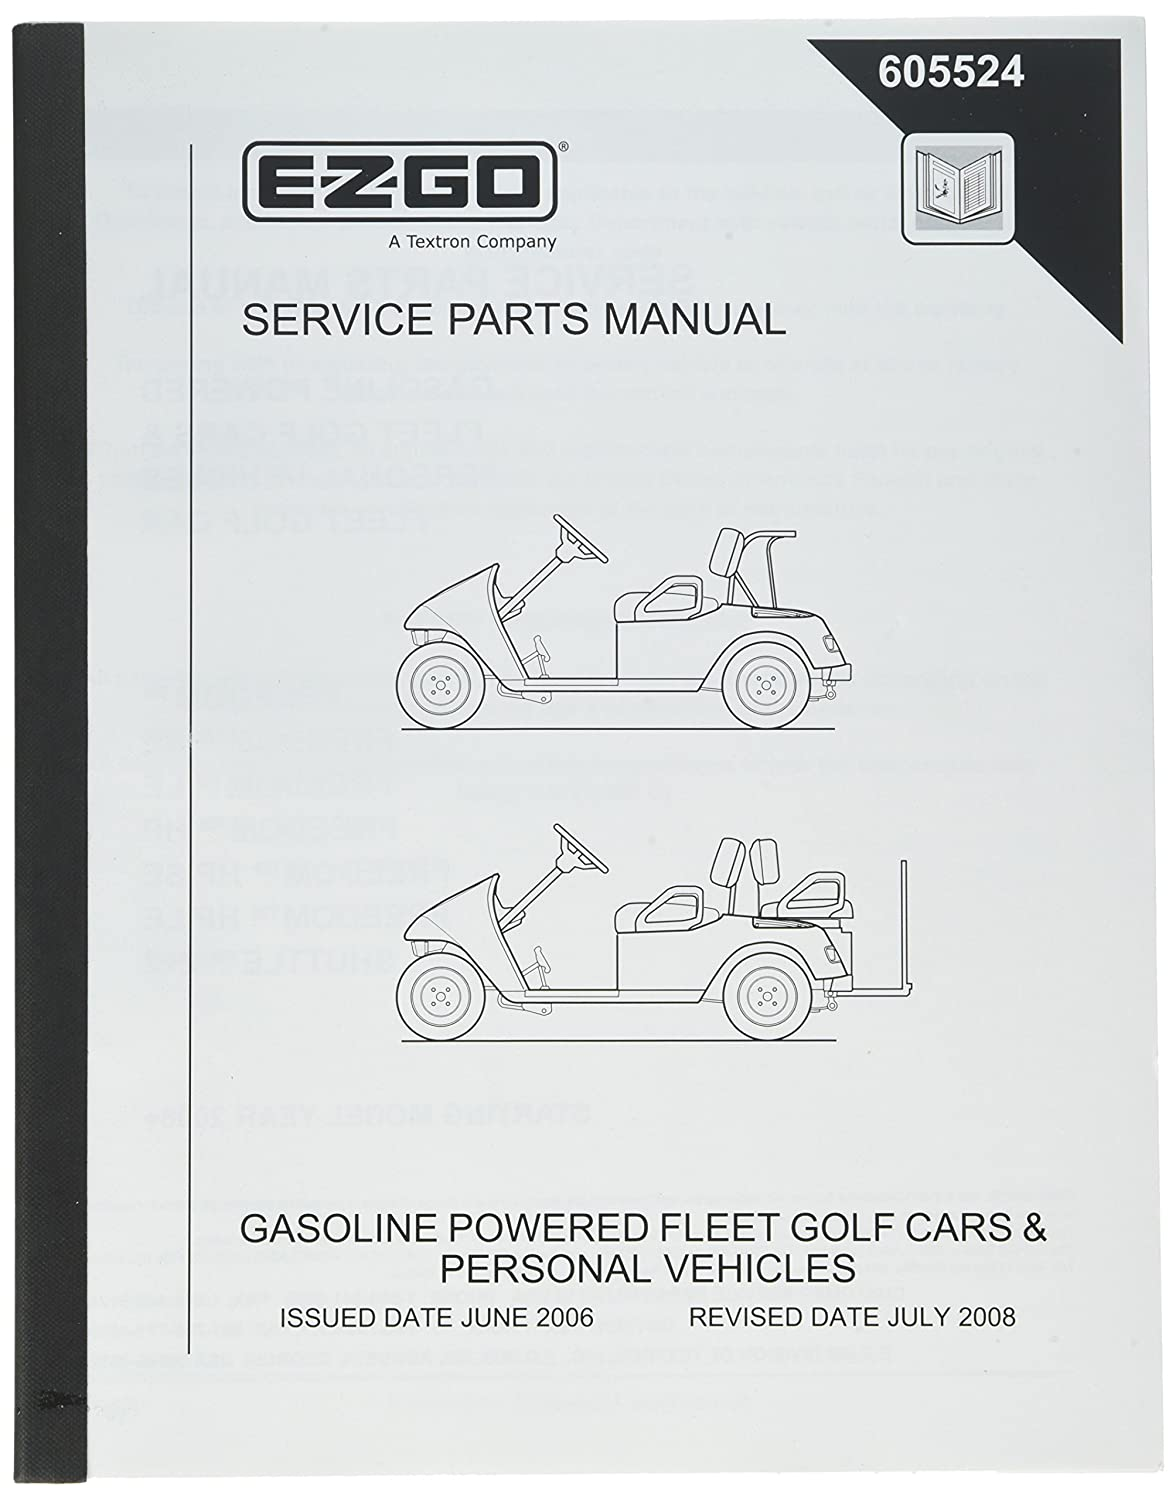 Amazon.com : EZGO 605524 2006-current Service Parts Manual for Fleet Golf  Cars and Personal Vehicles : Outdoor Decorative Fences : Garden & Outdoor